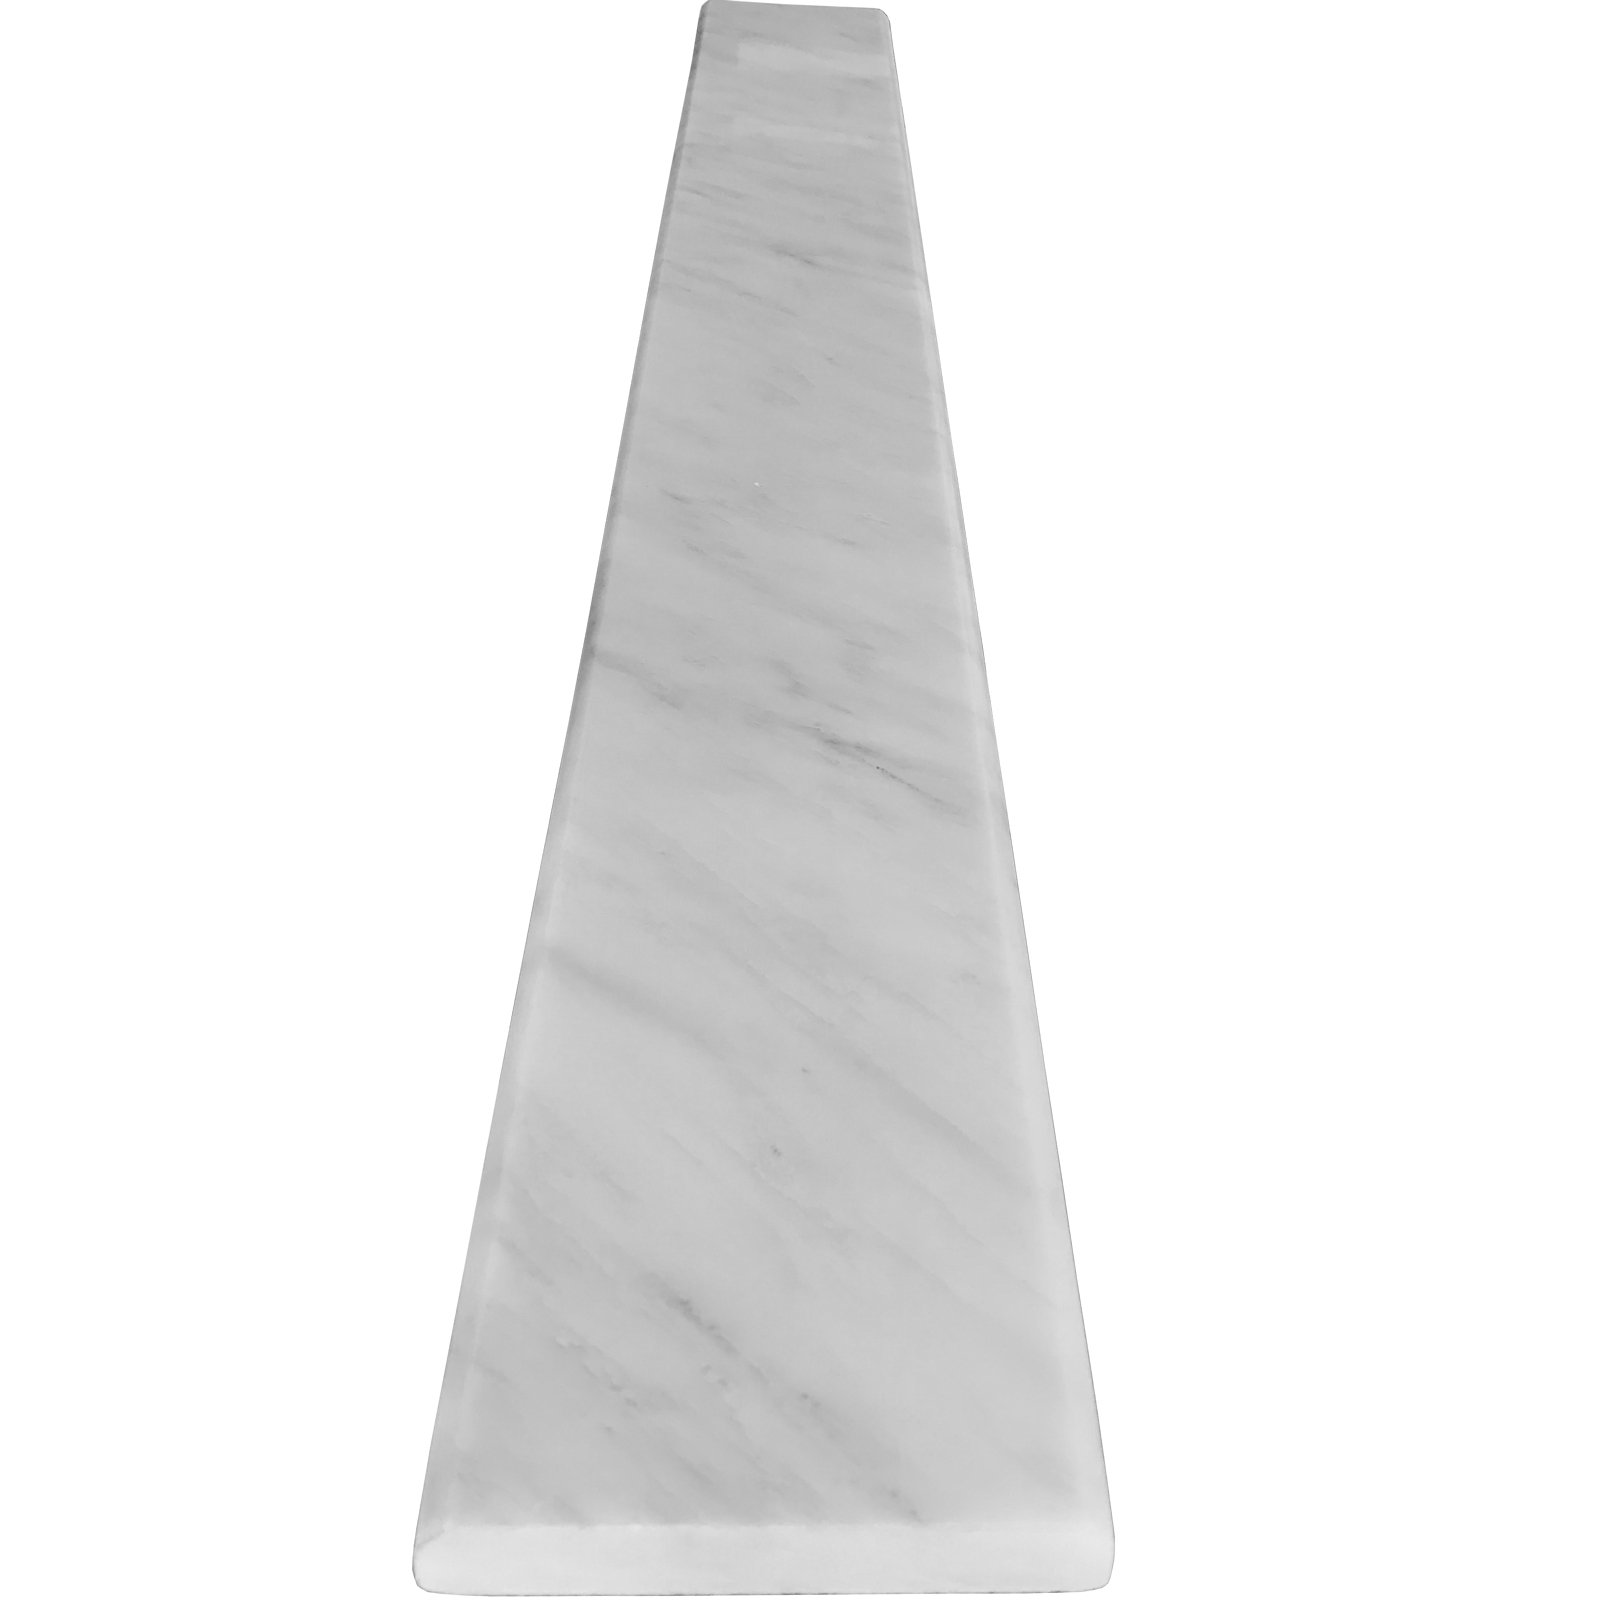 Carrara Threshold: 4 X 36 Threshold Saddle